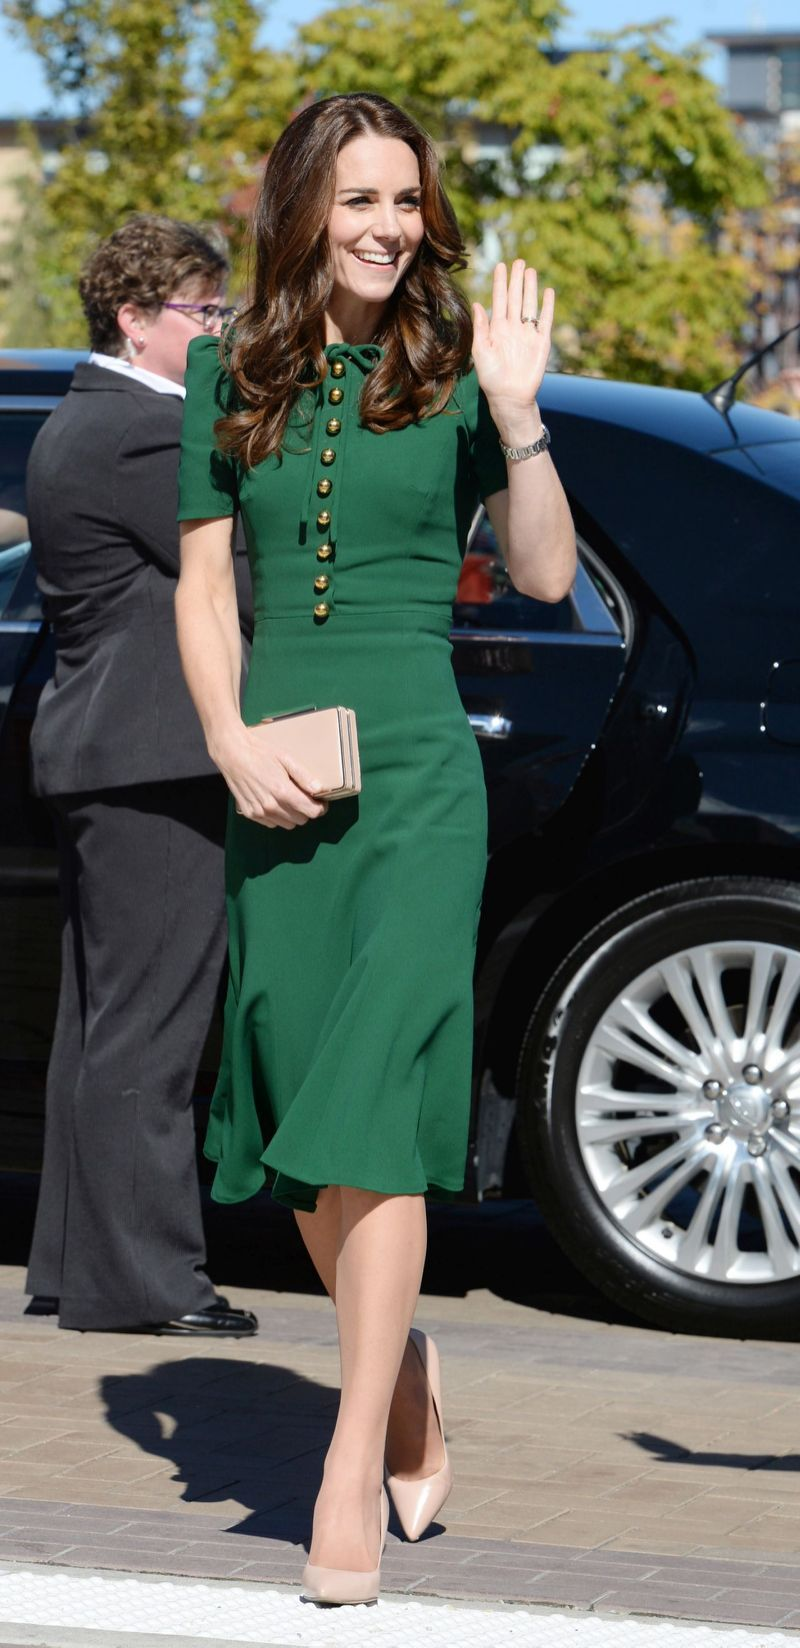 Kate Middleton Outfits from Royal Tour in Canada - Photos